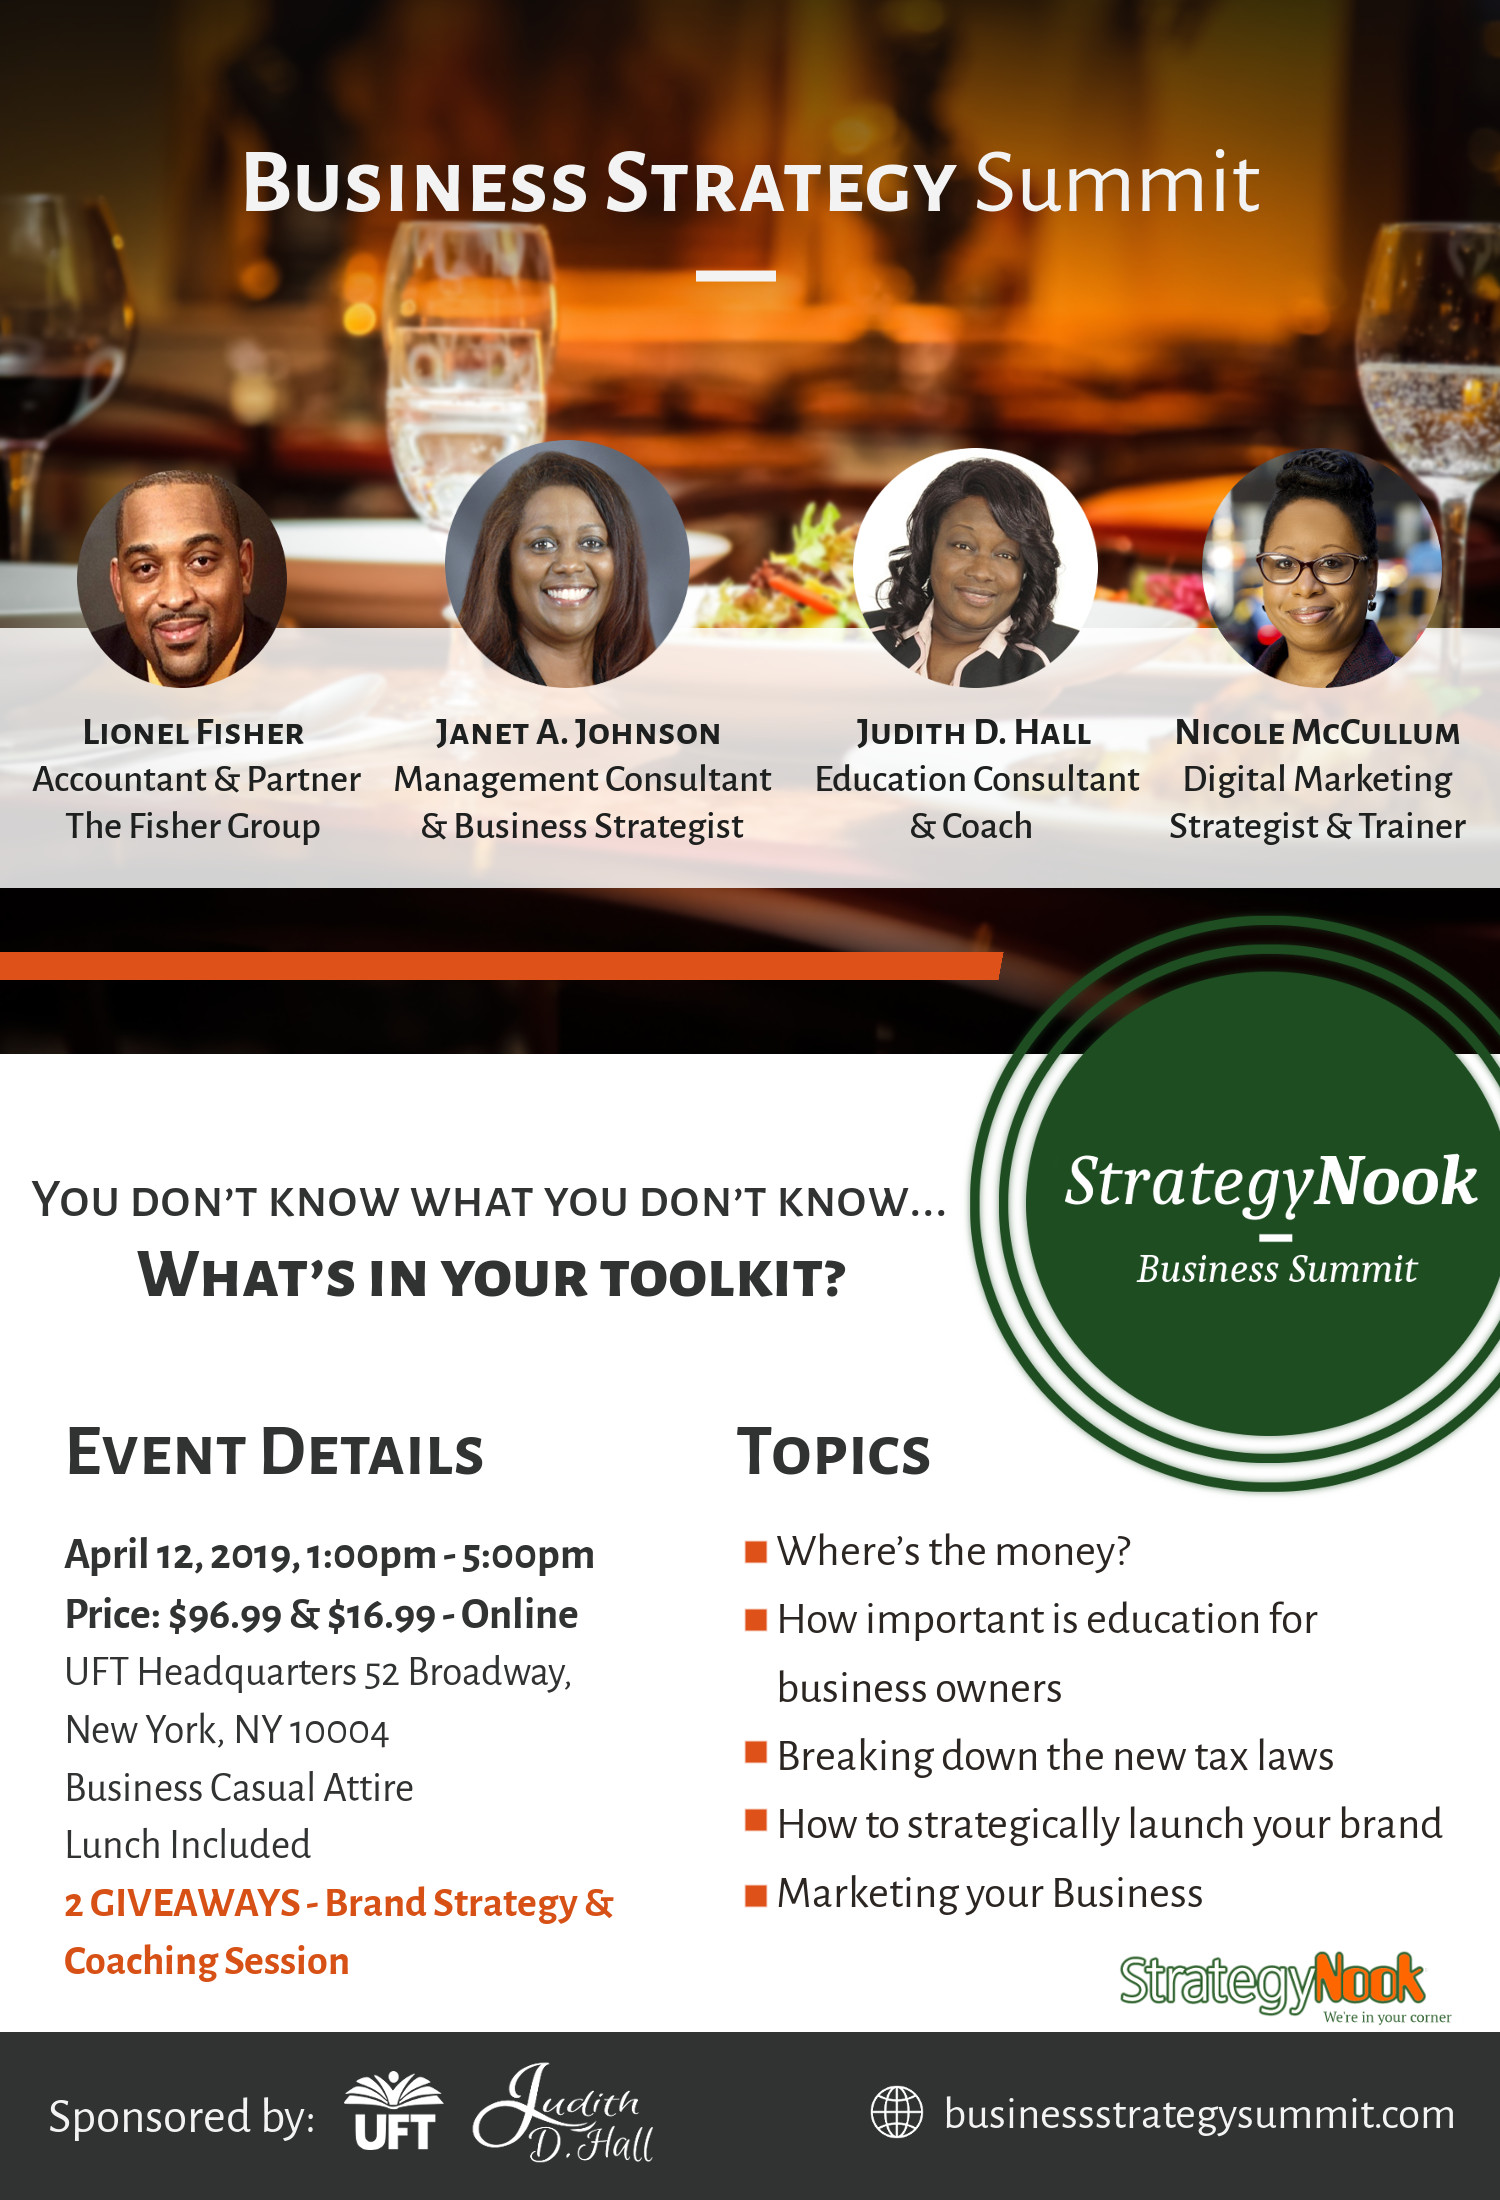 Business Strategy Summit - StrategyNook